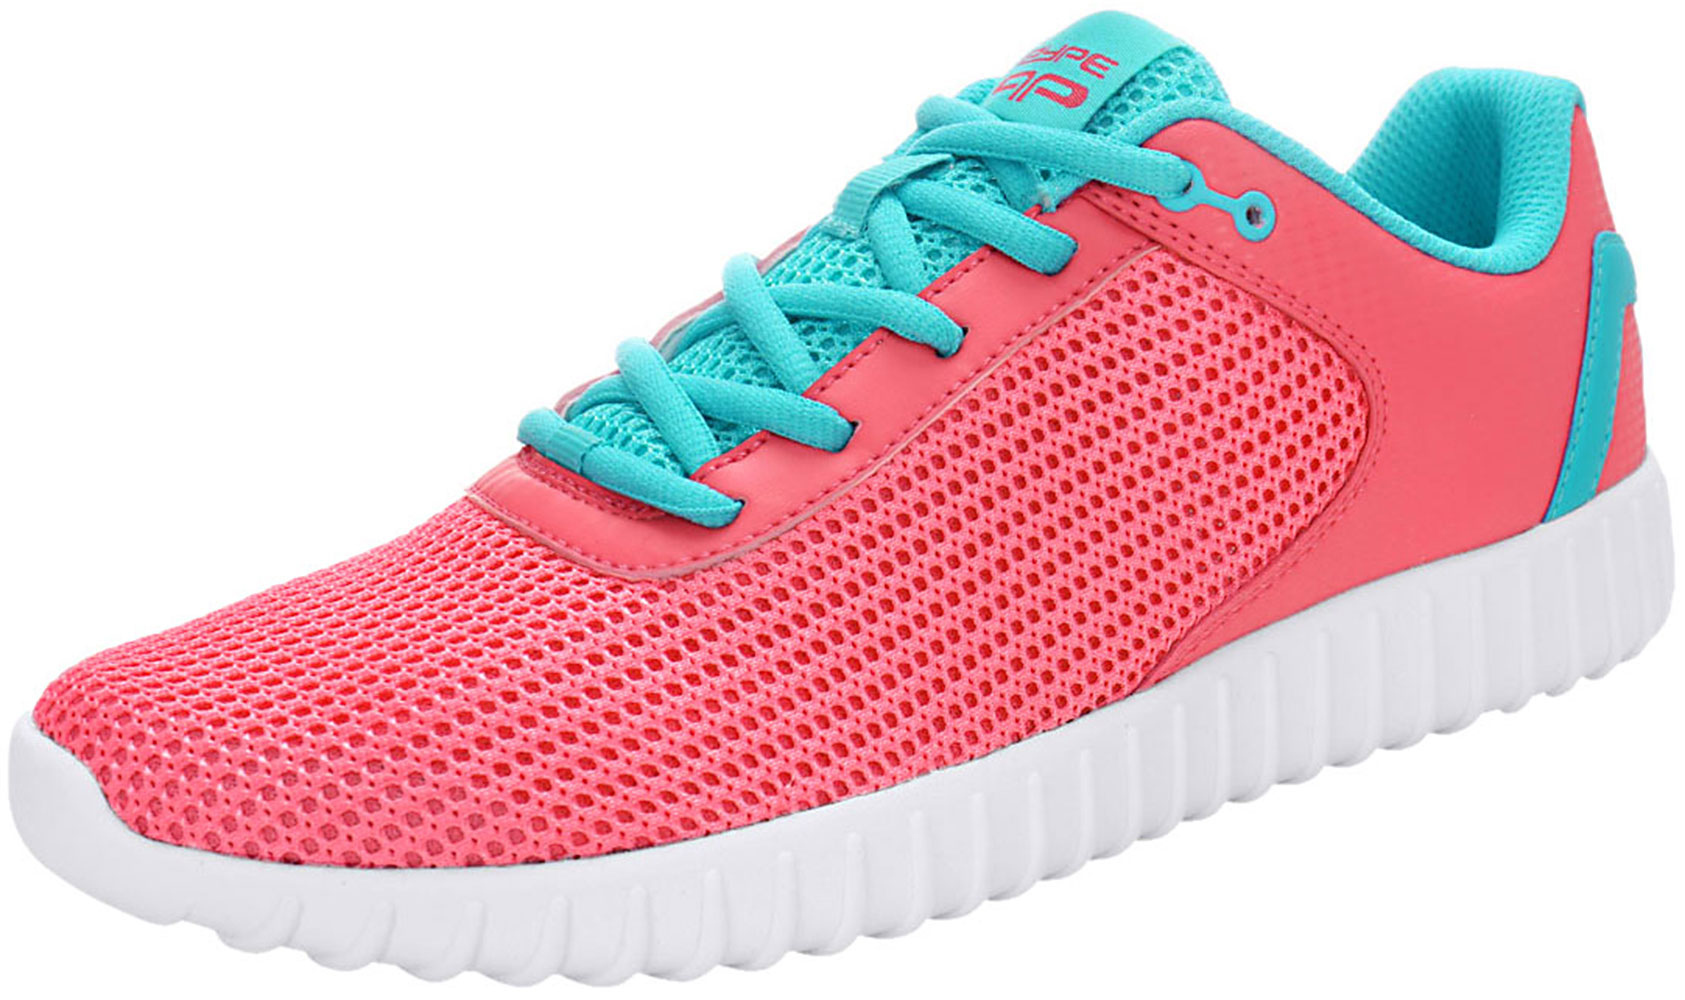 PYPE Women Contrast Color PU Panel Mesh Training Shoes Pink US 9